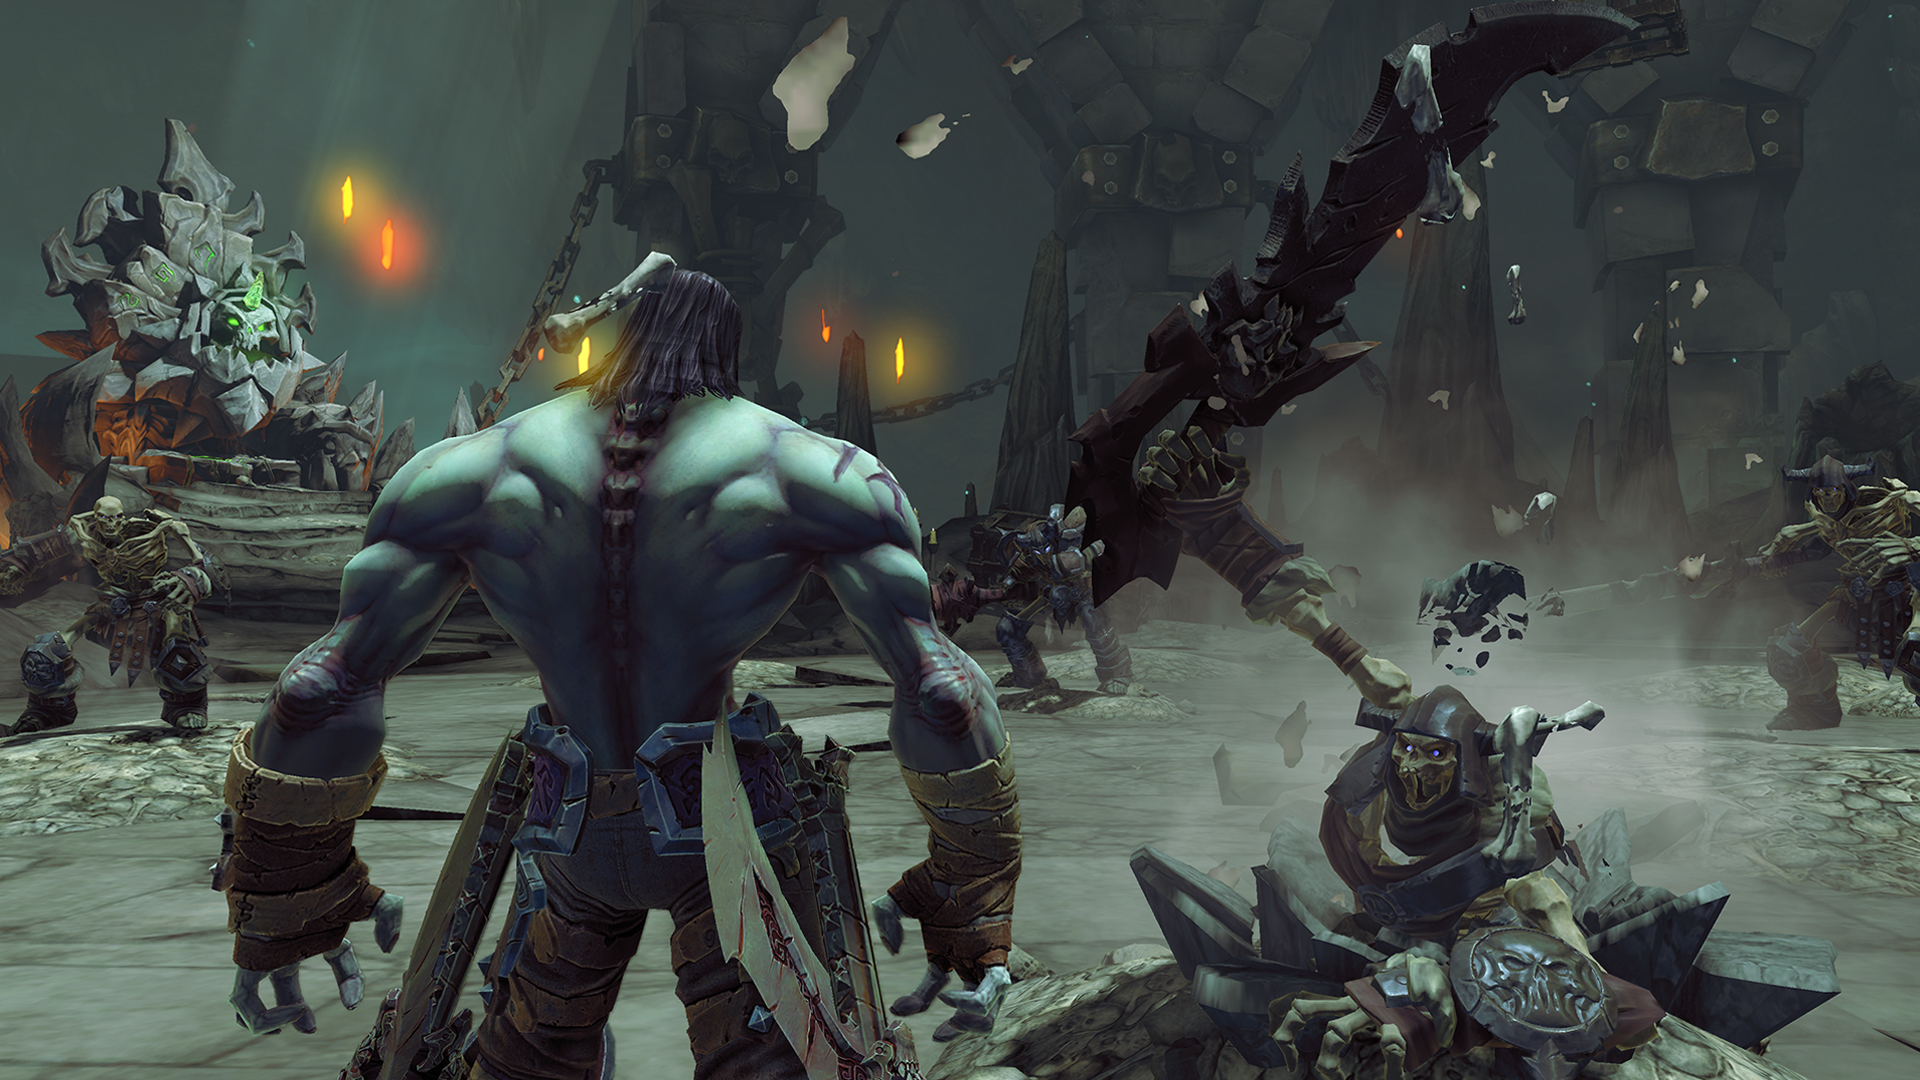 Darksiders II Deathinitive Edition Comparison Screens - GodisaGeek.com